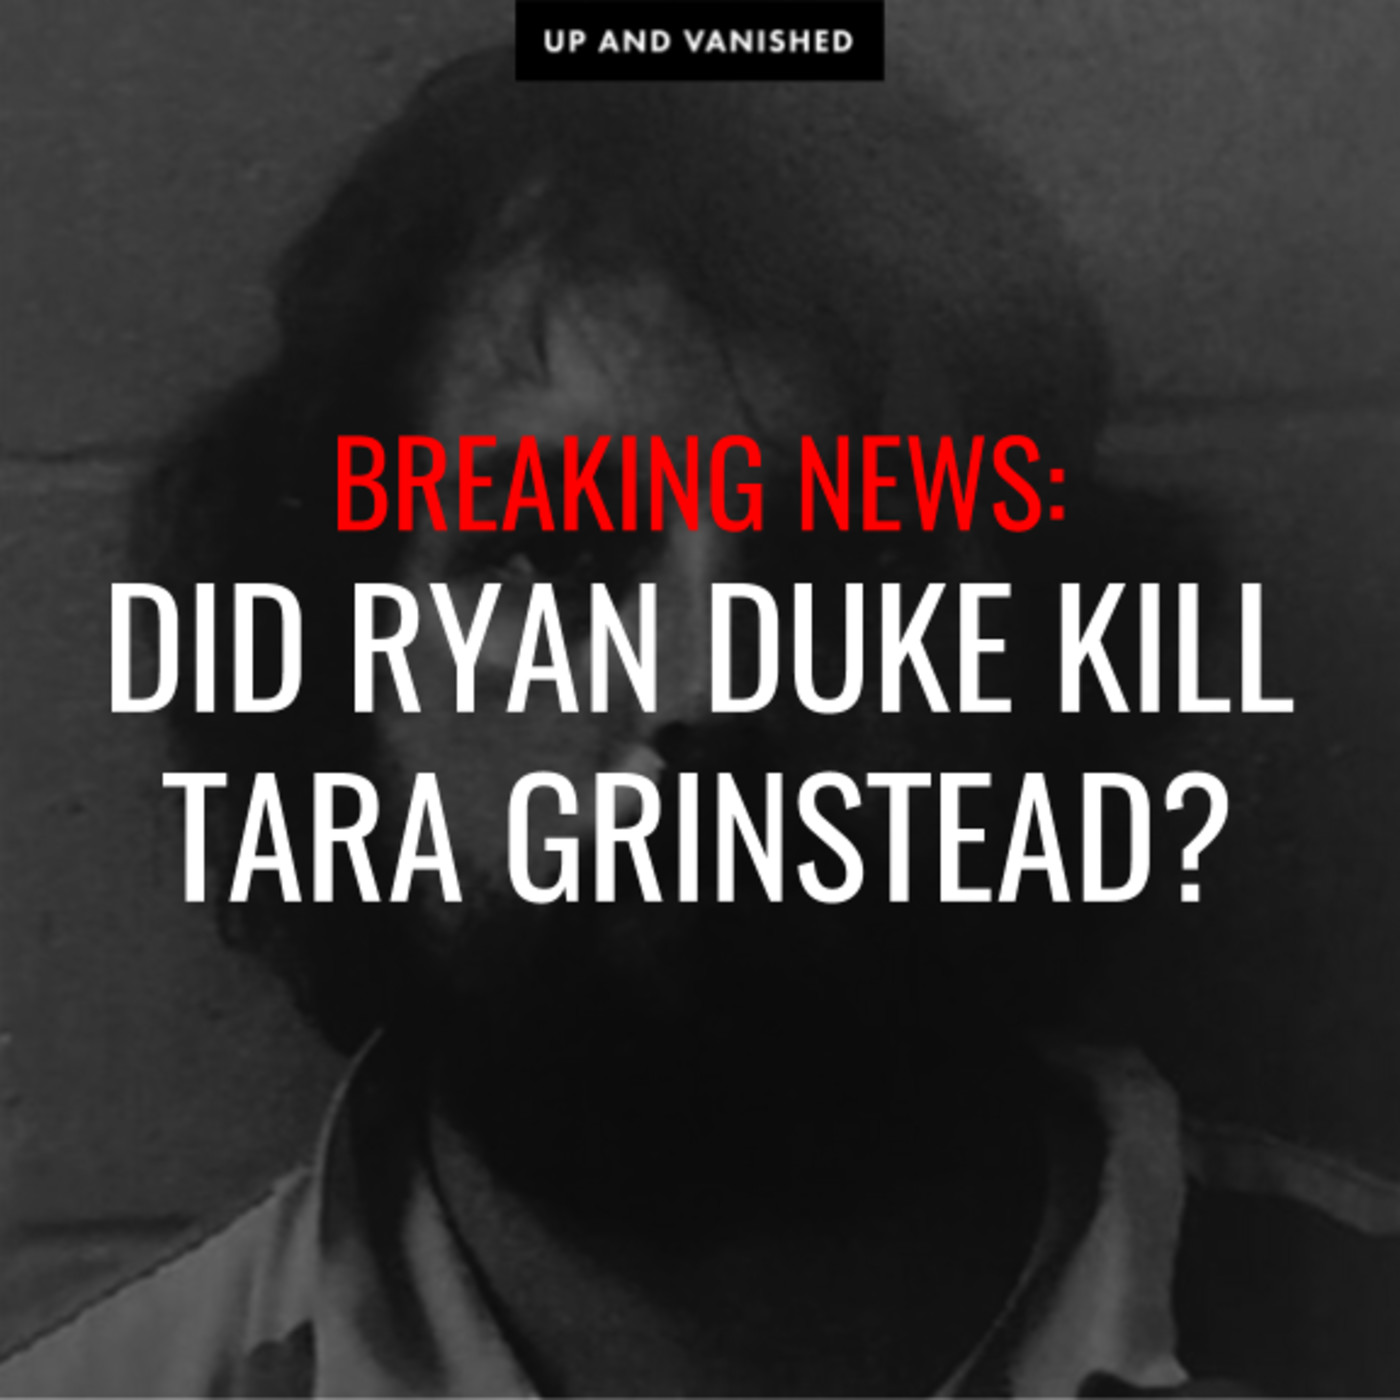 Did Ryan Duke kill Tara Grinstead?